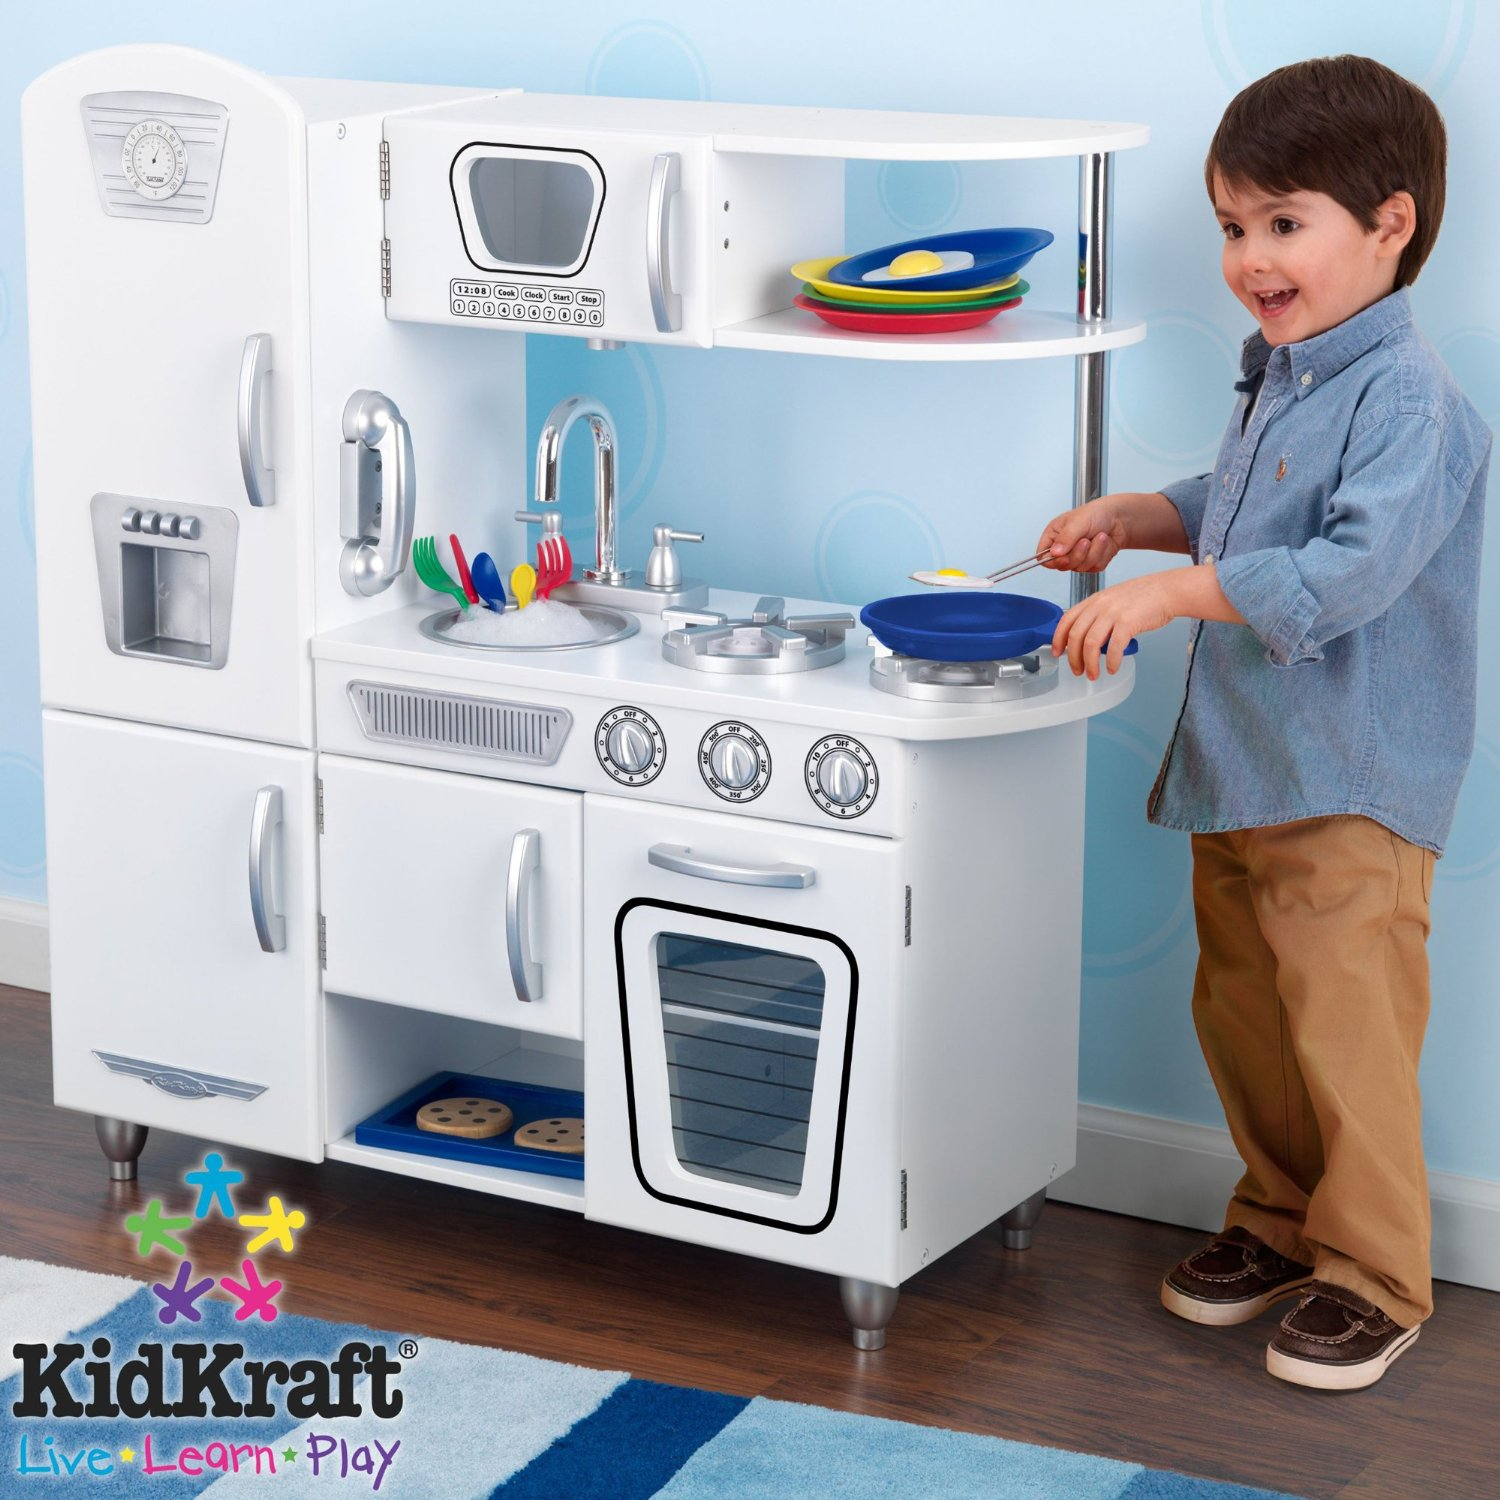 a lovely little life play kitchen - even boys will want to play with it